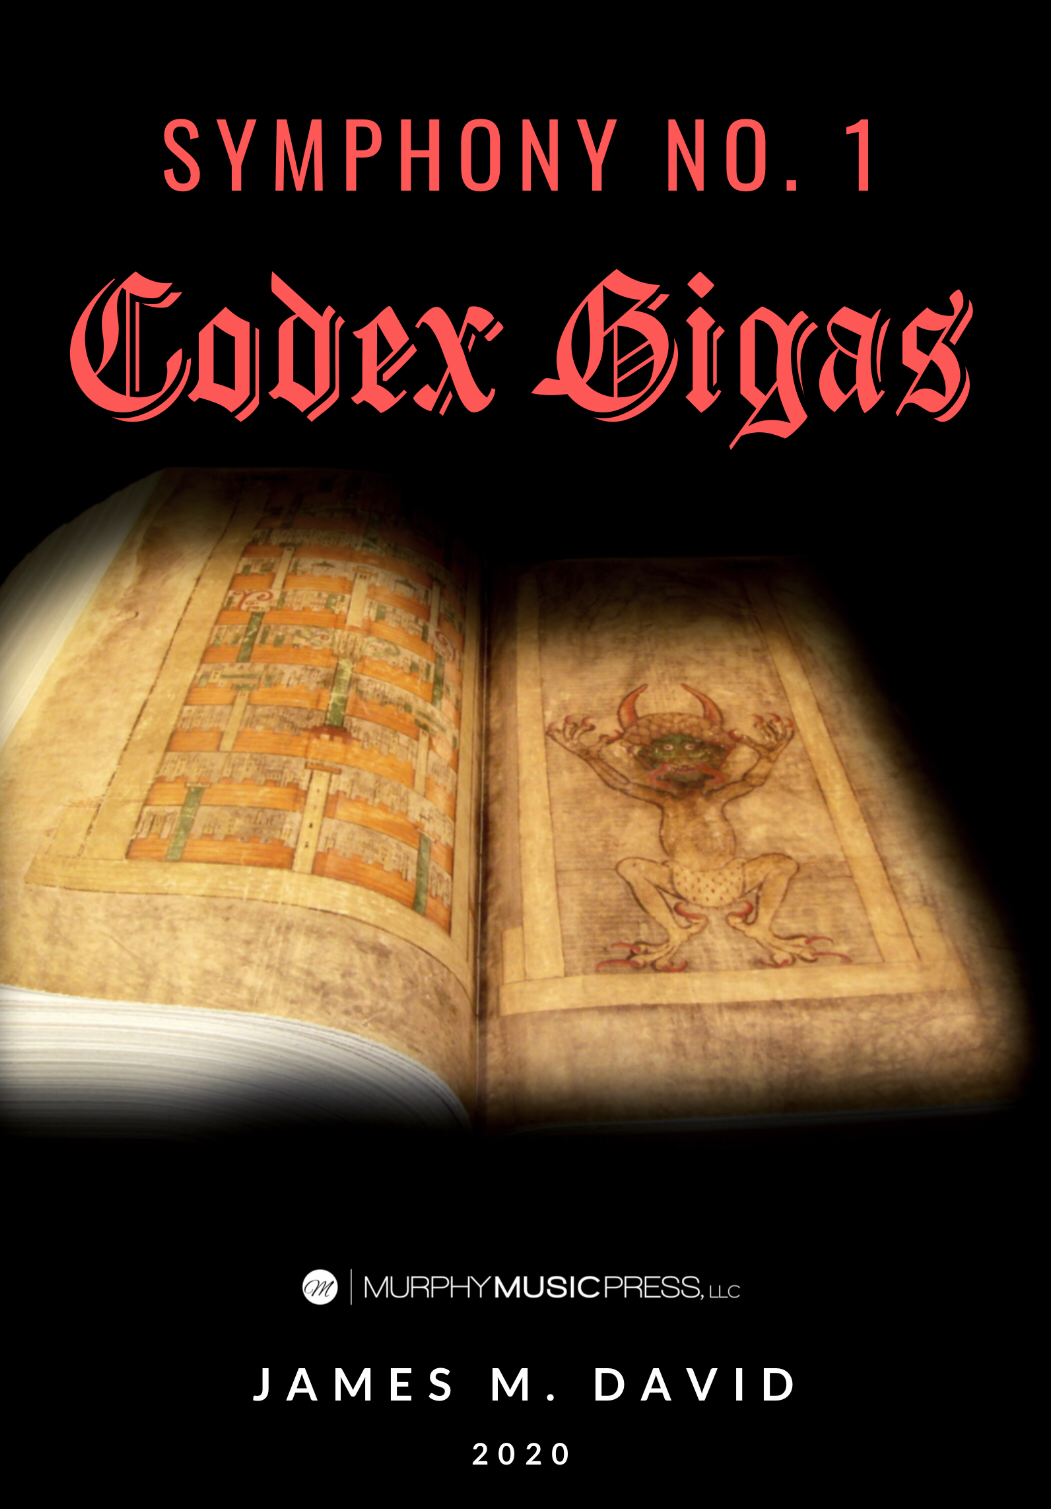 Symphony No. 1: Codex Gigas (Score Only) by James David